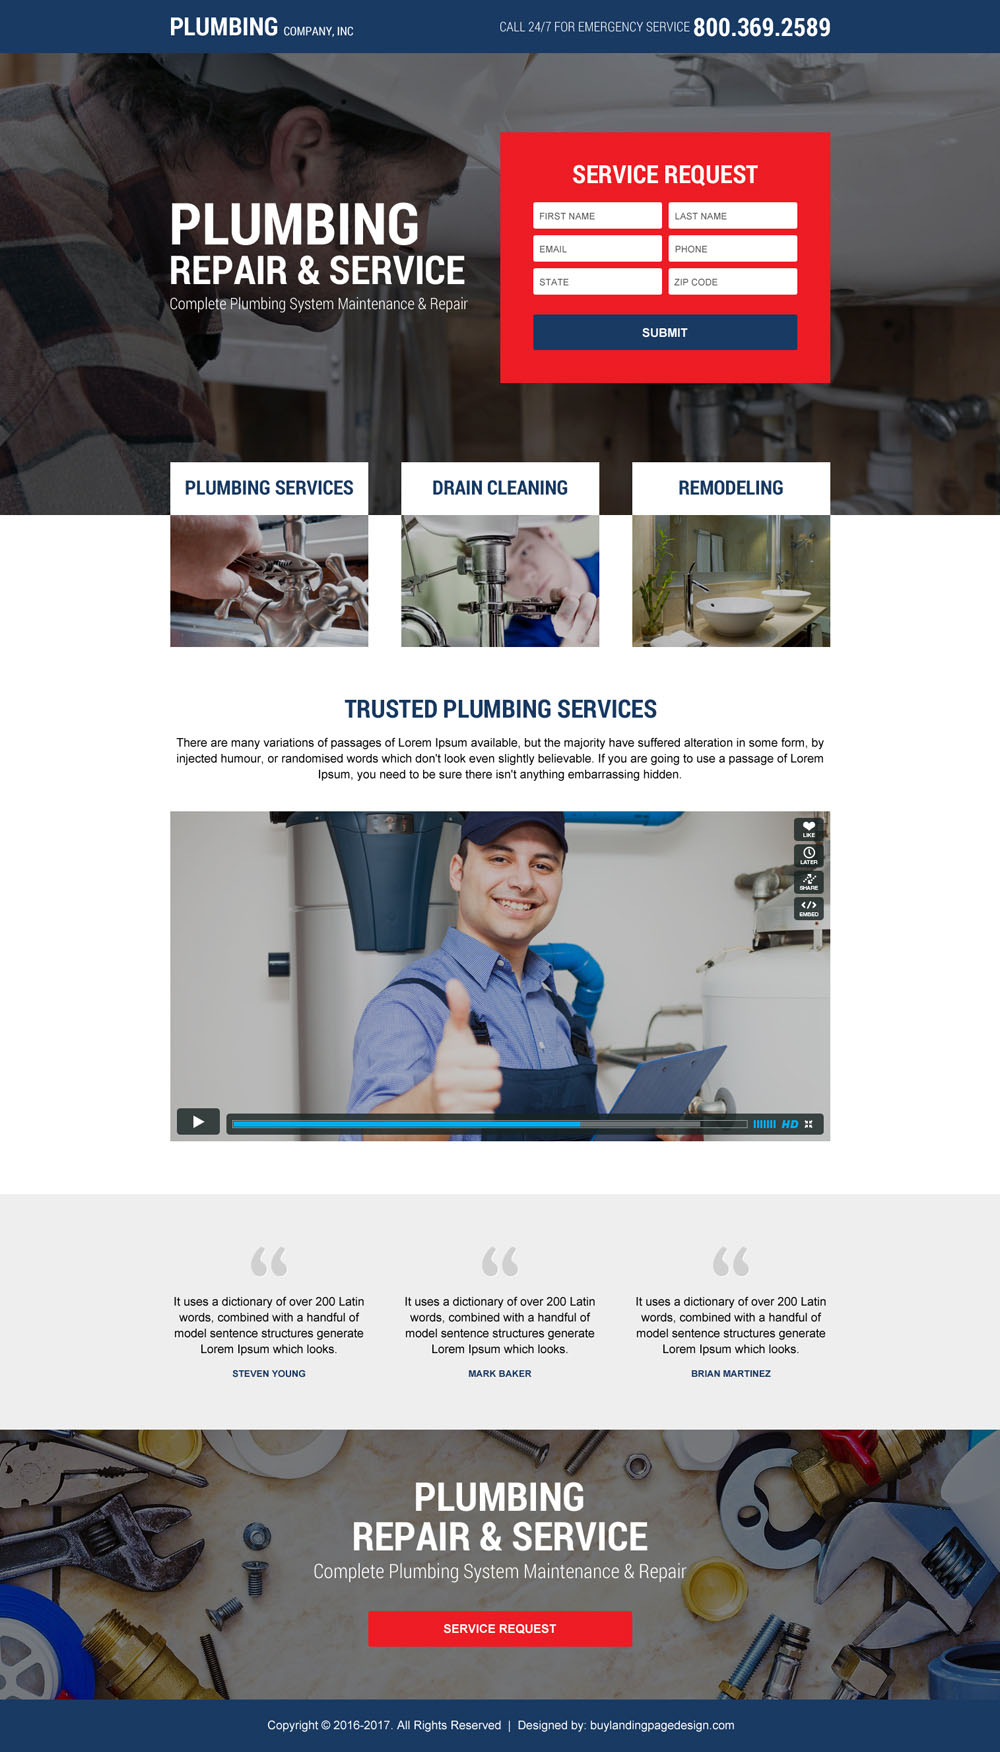 plumbing-service-company-lead-capture-landing-page-design-005